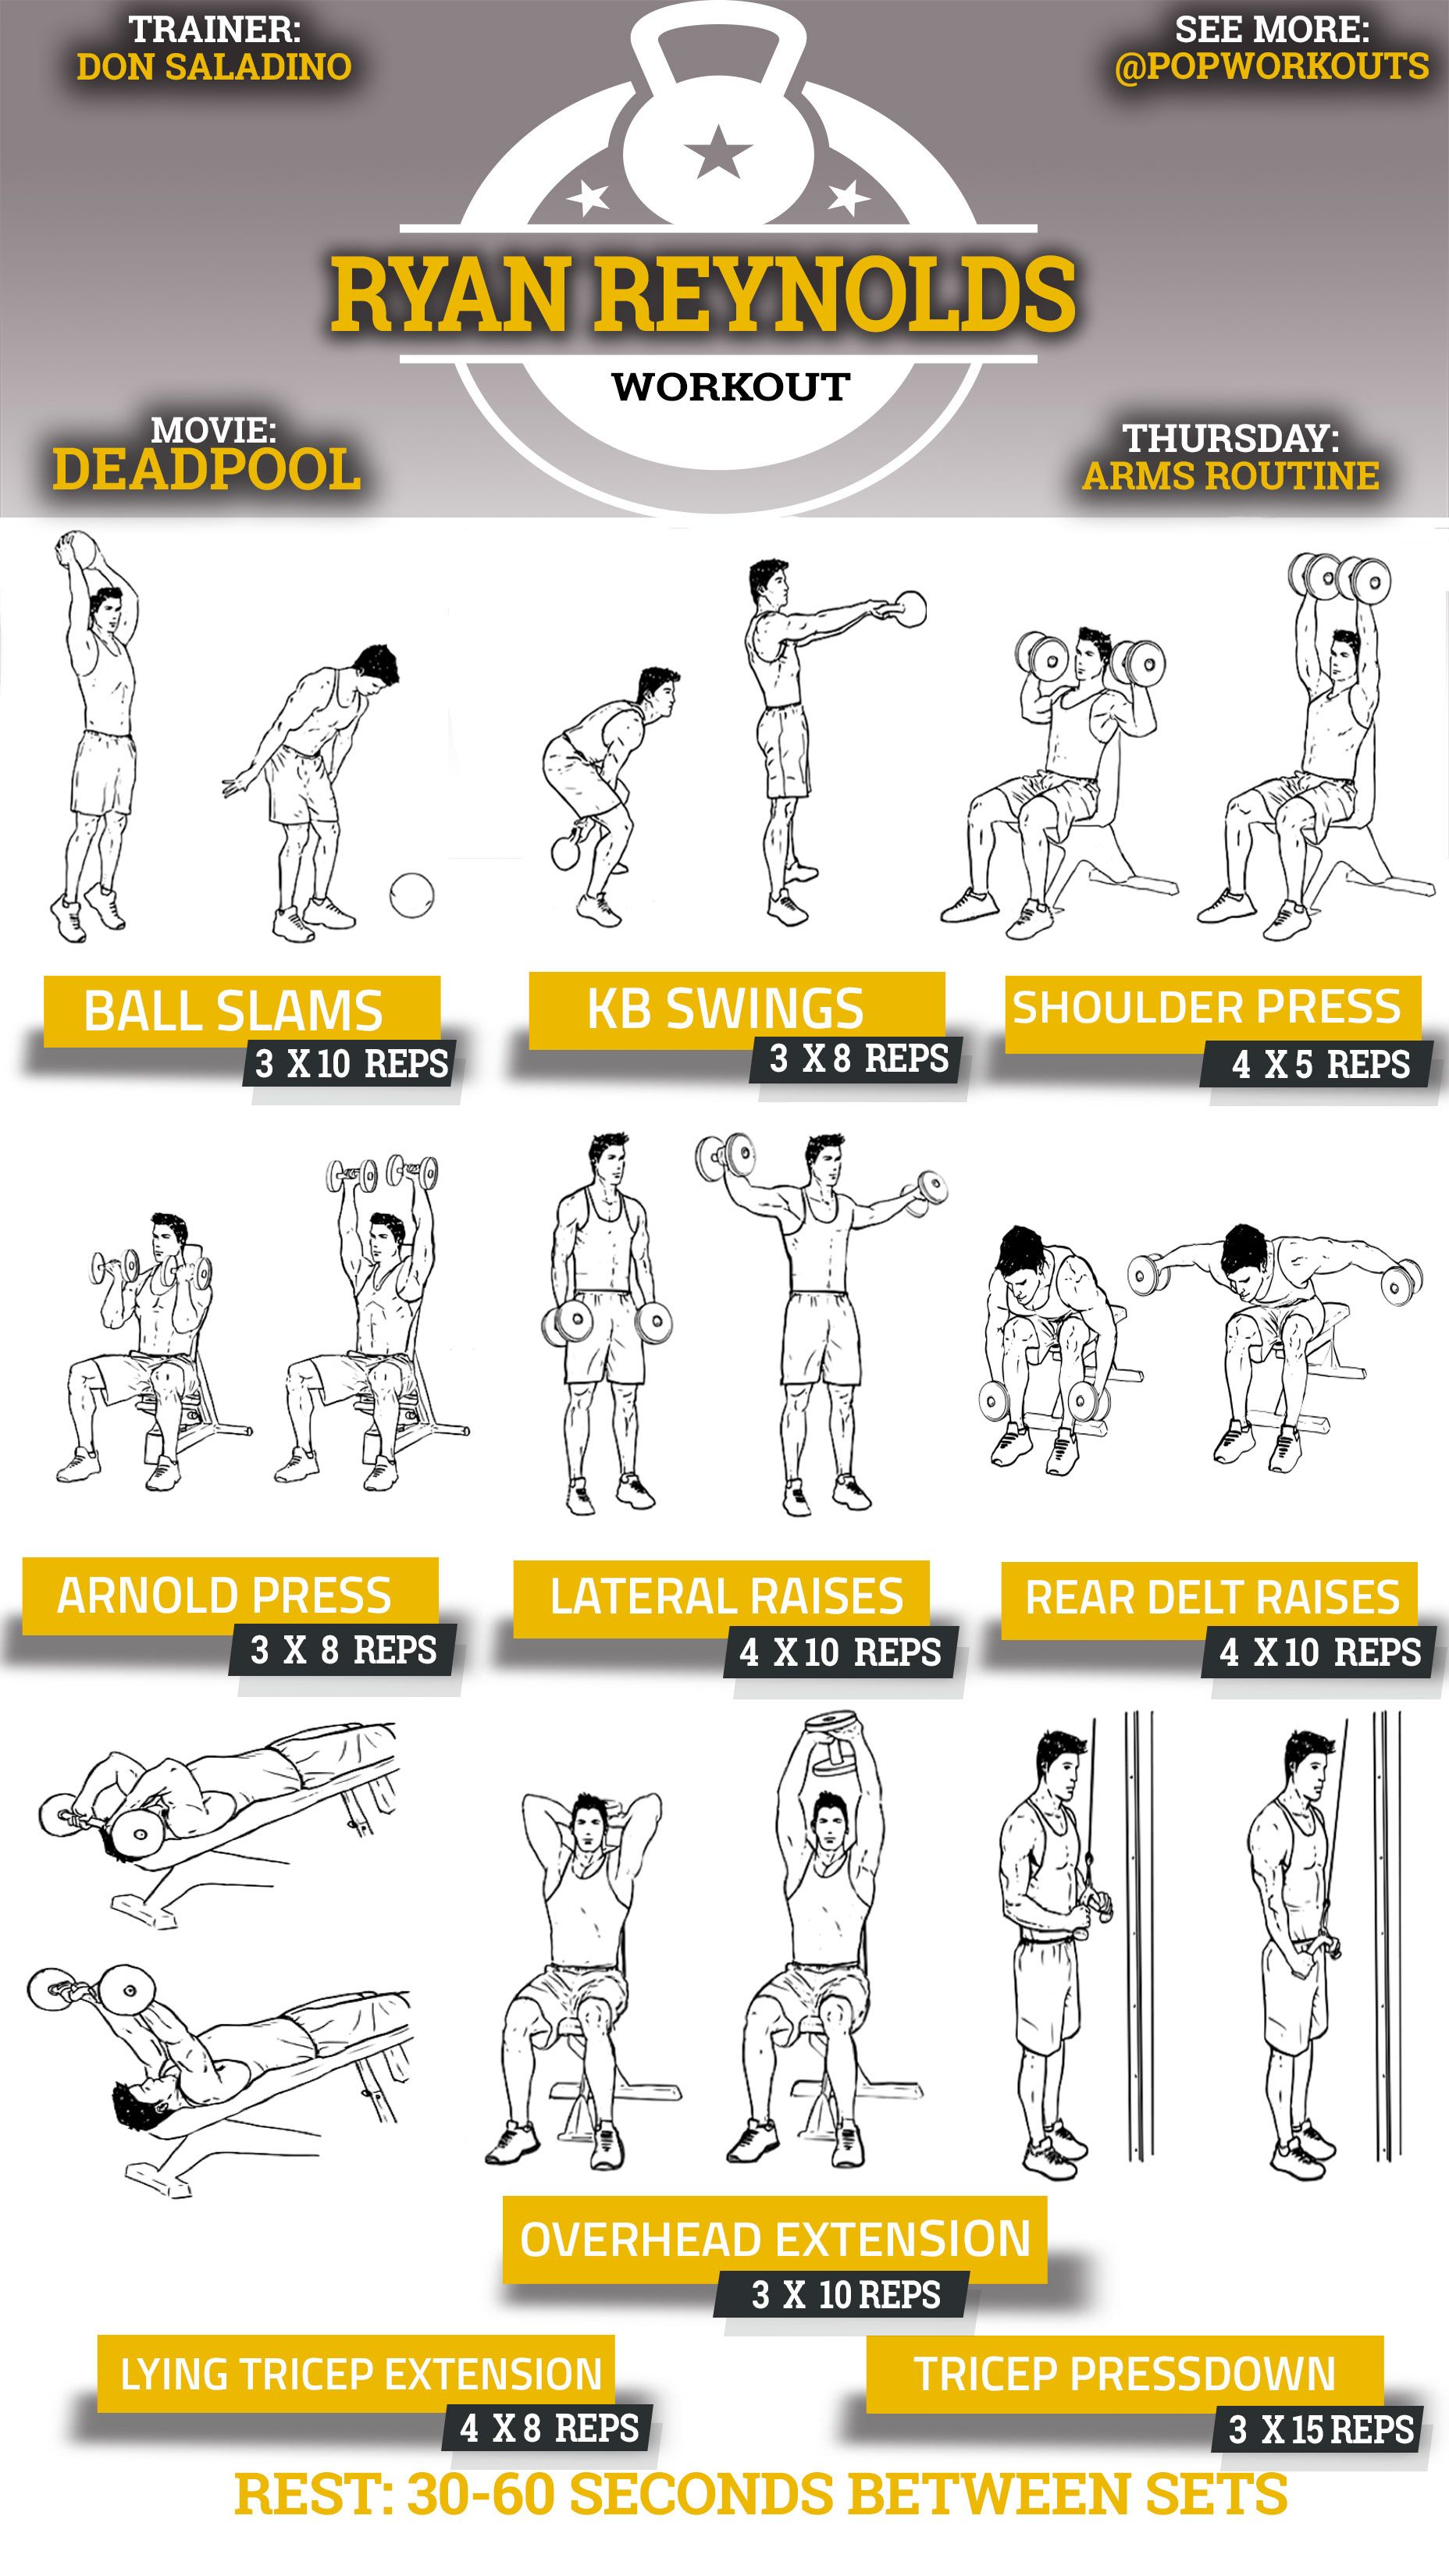 Ryan Reynolds Deadpool Routine Arms Workout Chart Shoulders Triceps